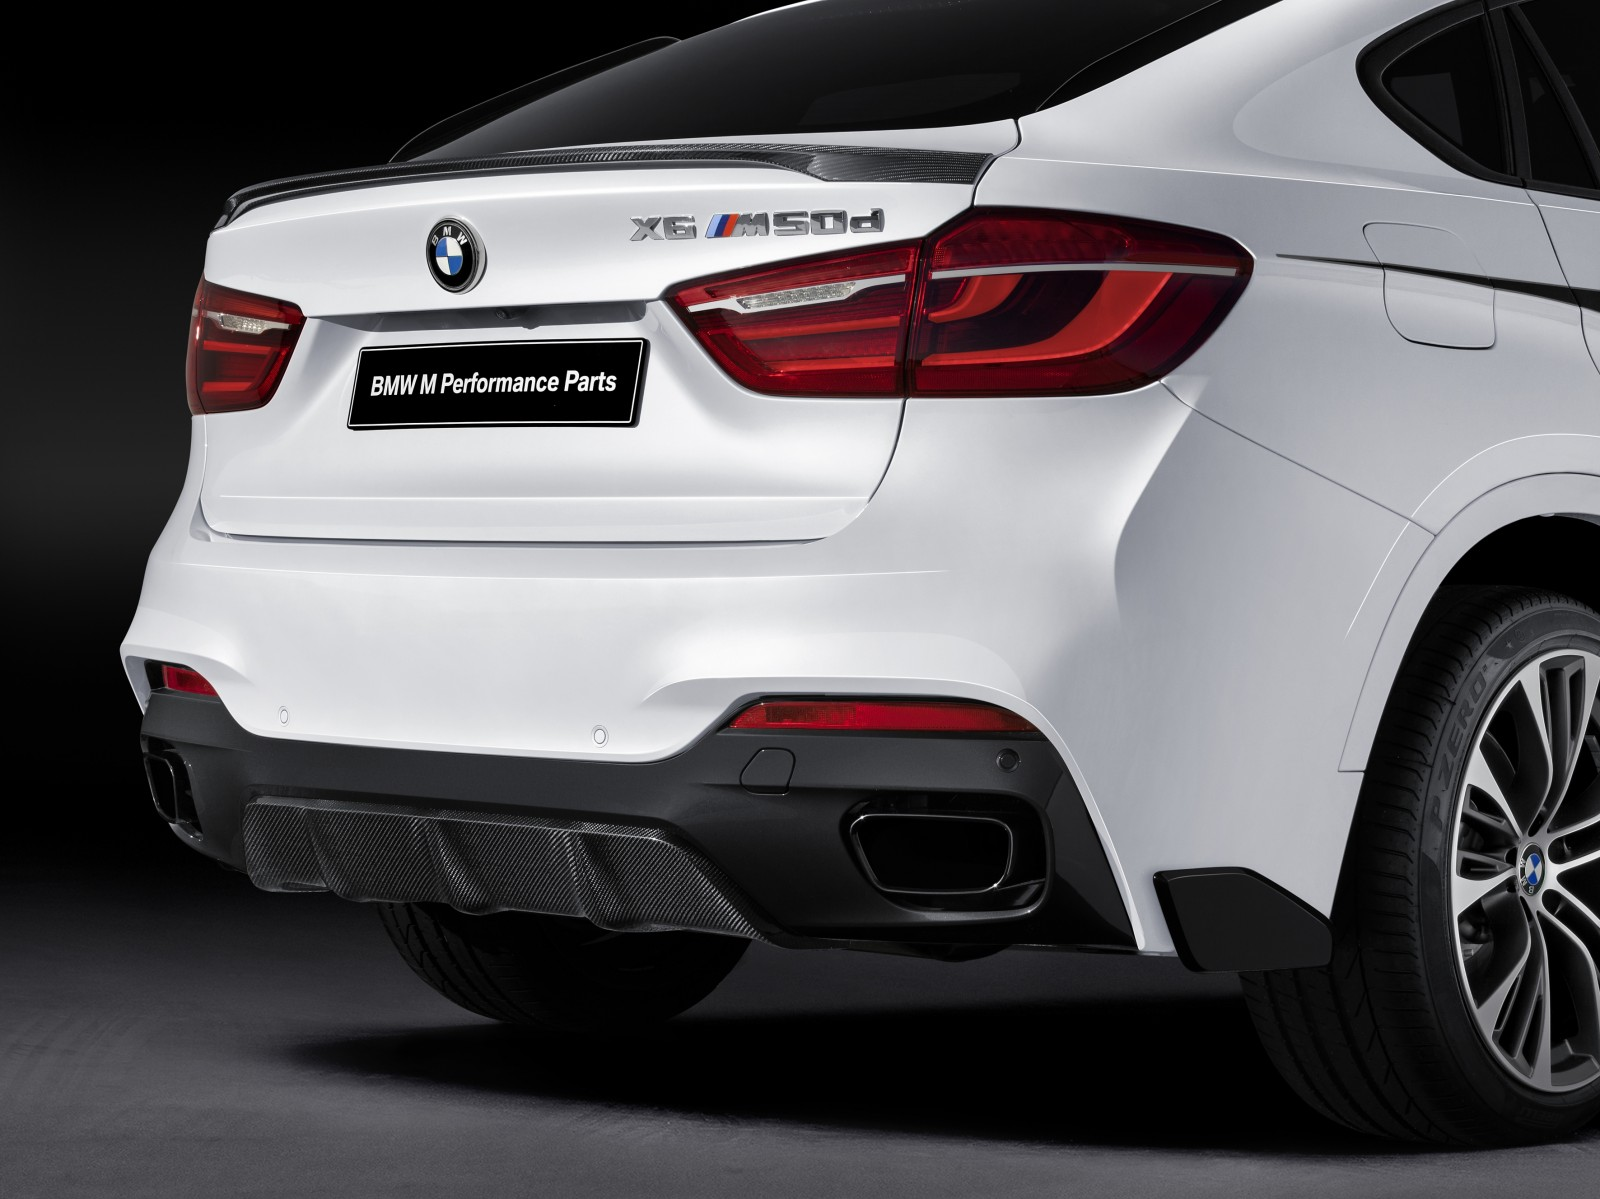 2018 BMW X6 M Performance Parts photo - 2